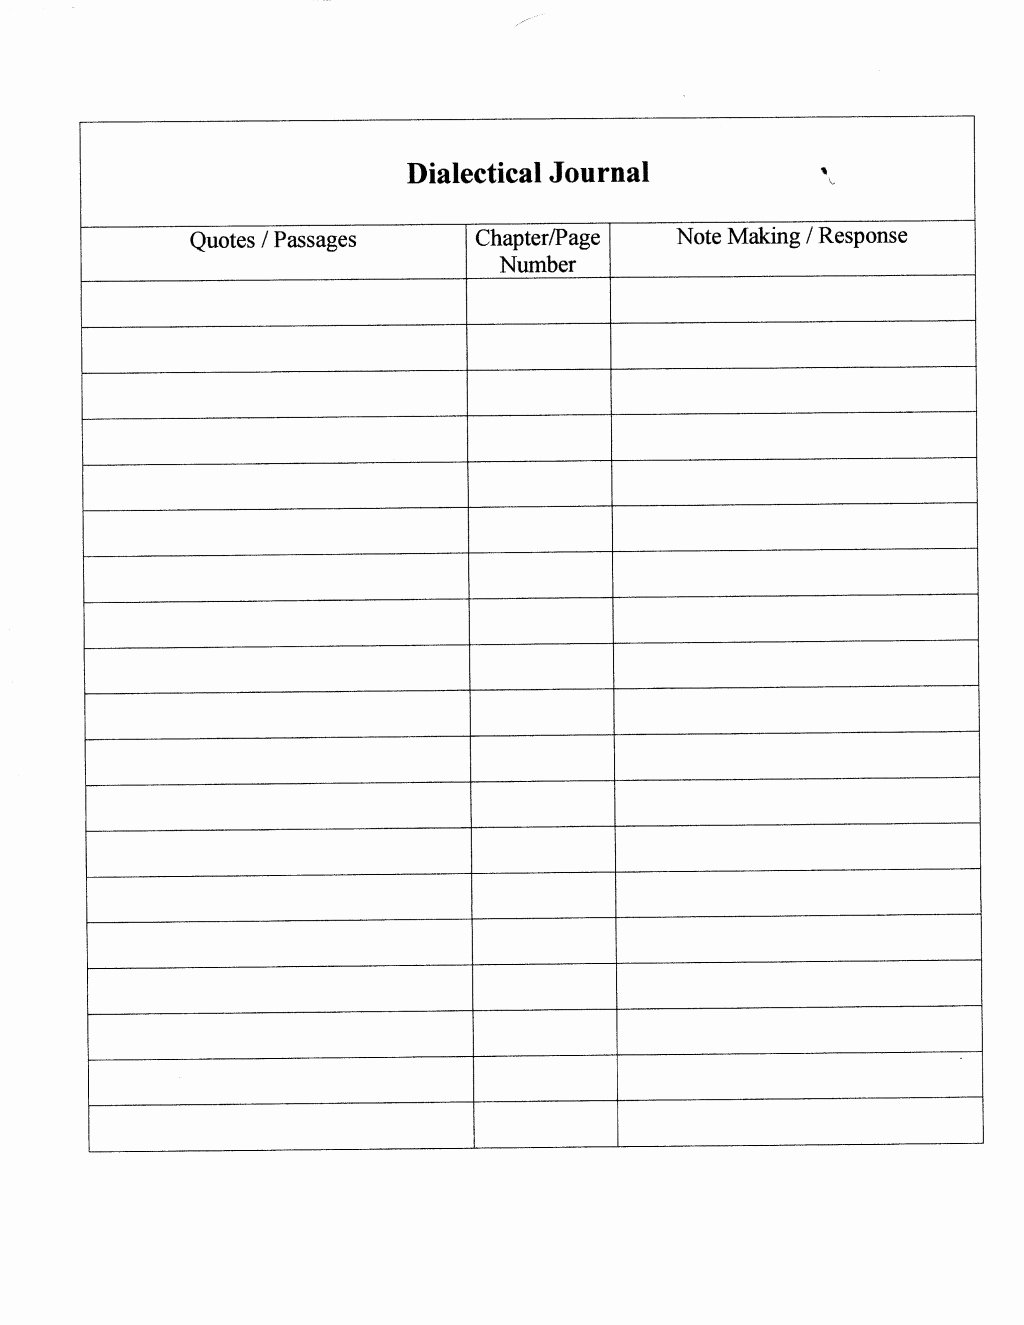 Double Entry Journal Template Unique Dialectical Journals and Reading